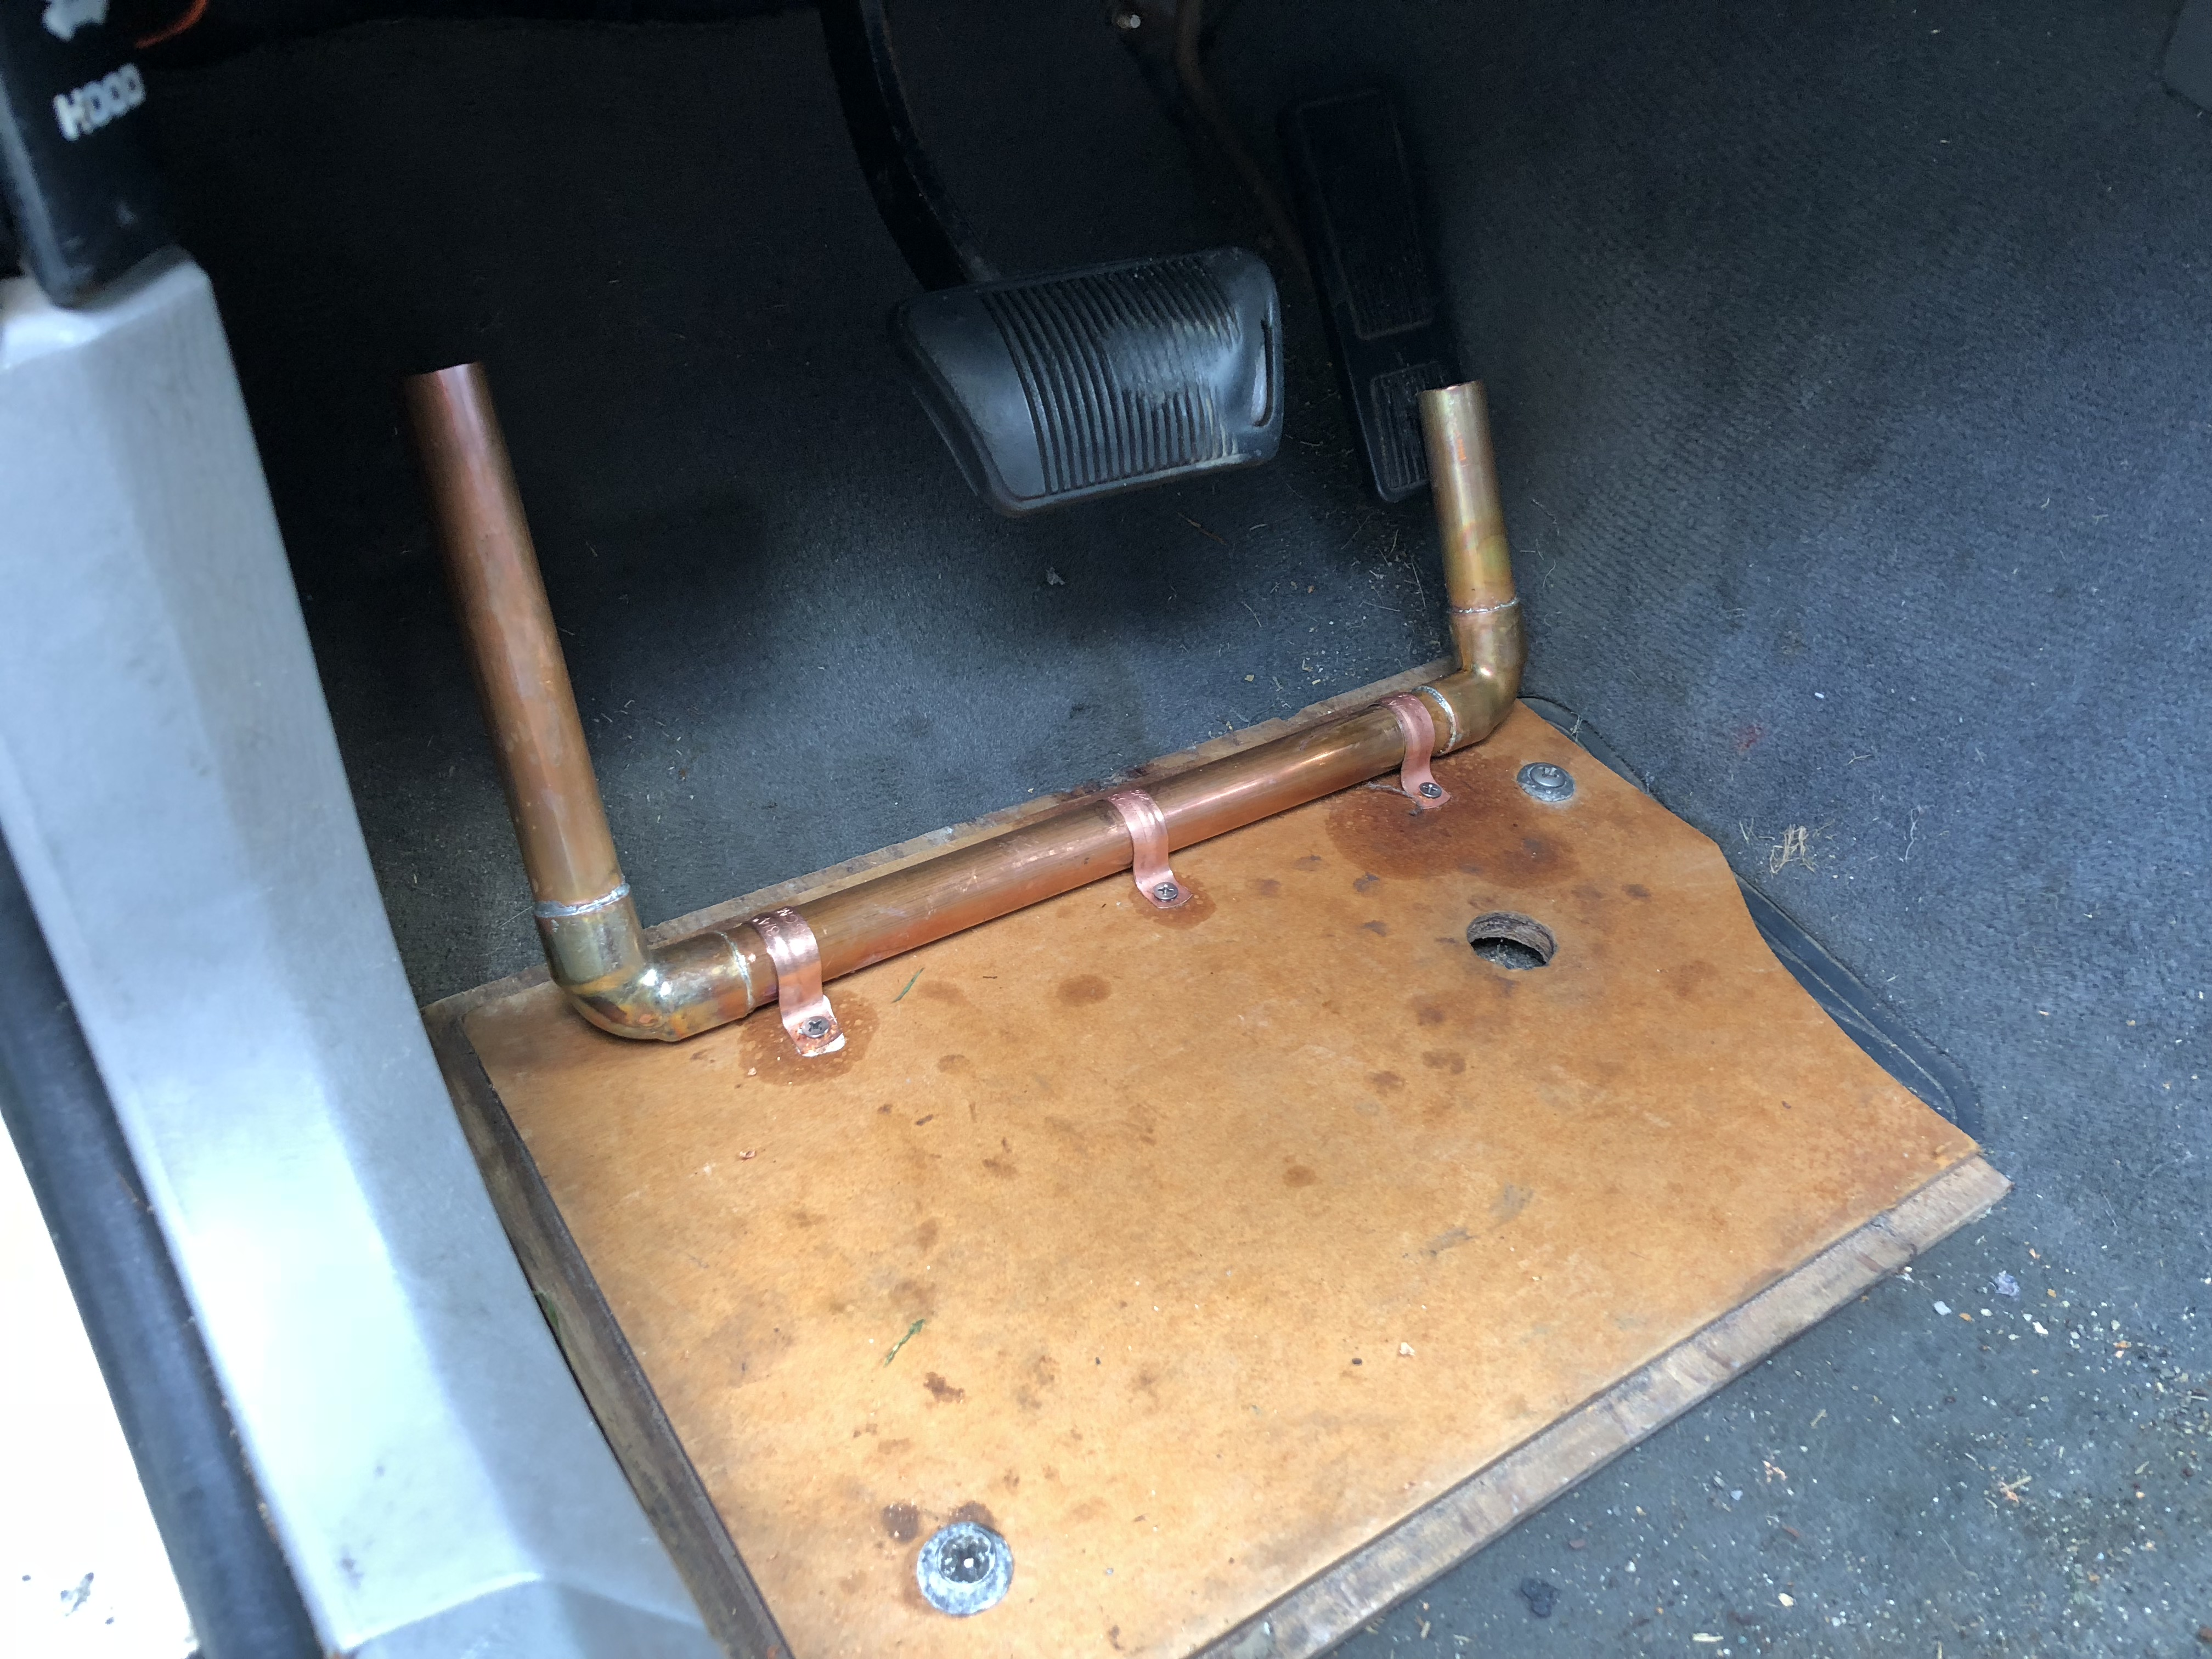 Home made left-foot accelerator modification